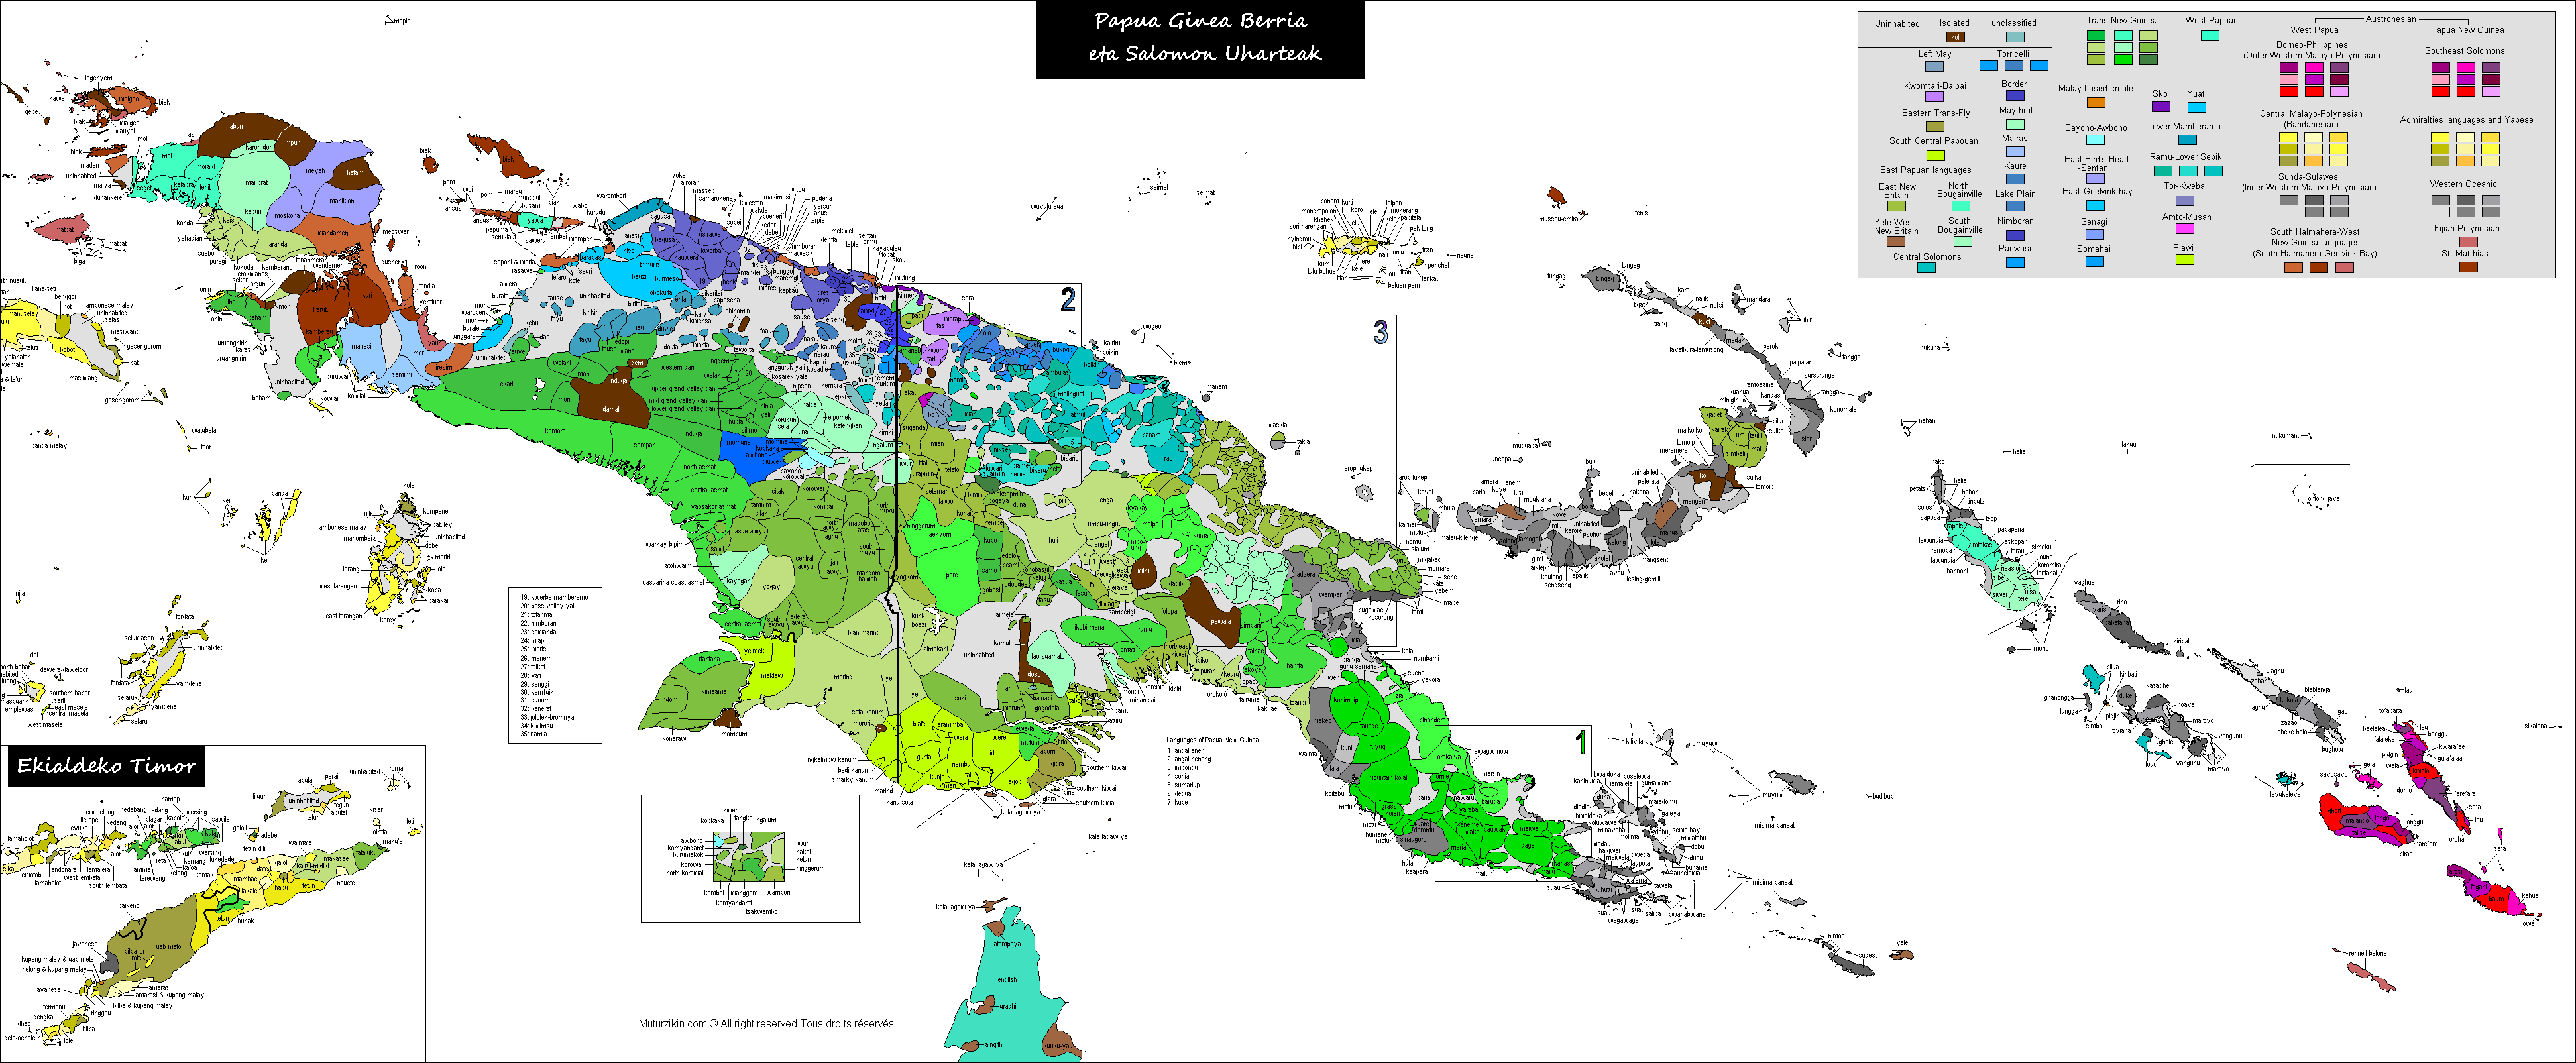 Papua-New Guinea, Solomon Islands & Timor Leste - Carte ...